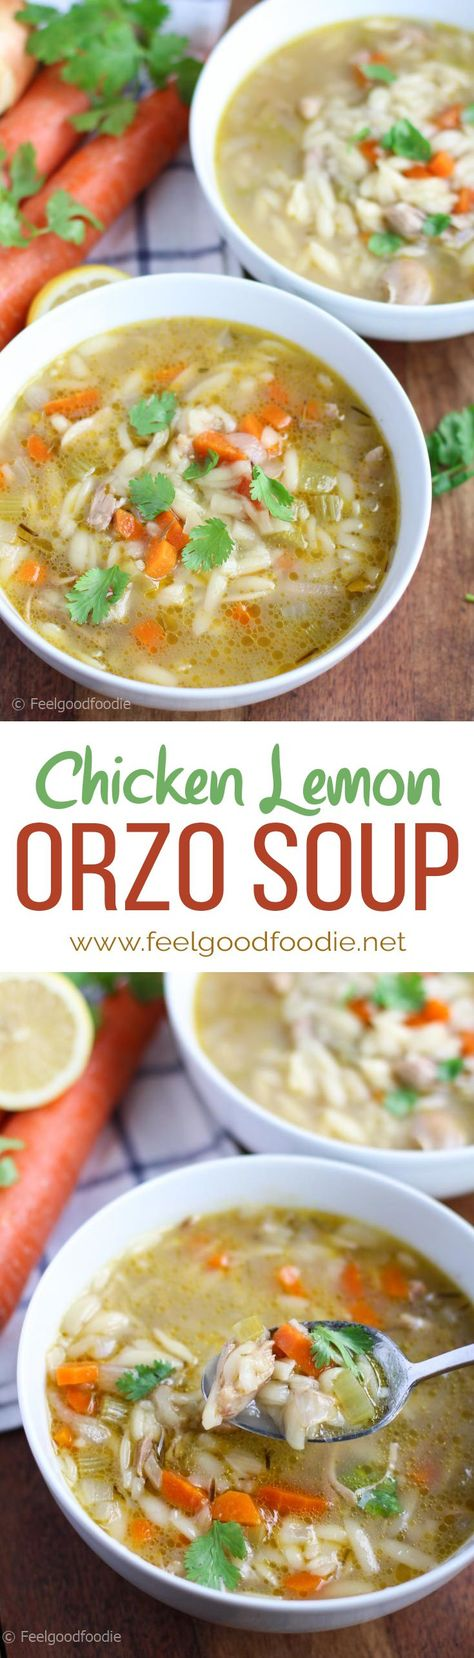 This Chicken Lemon Orzo Soup reminds me a lot of Chicken Noodle Soup. It has the three popular vegetables in most soups – onions, celery and carrots, it's loaded with shredded juicy chicken, and filled with orzo pasta (that cool pasta that looks like rice but tastes like pasta) – all in a fresh and lemony chicken broth.